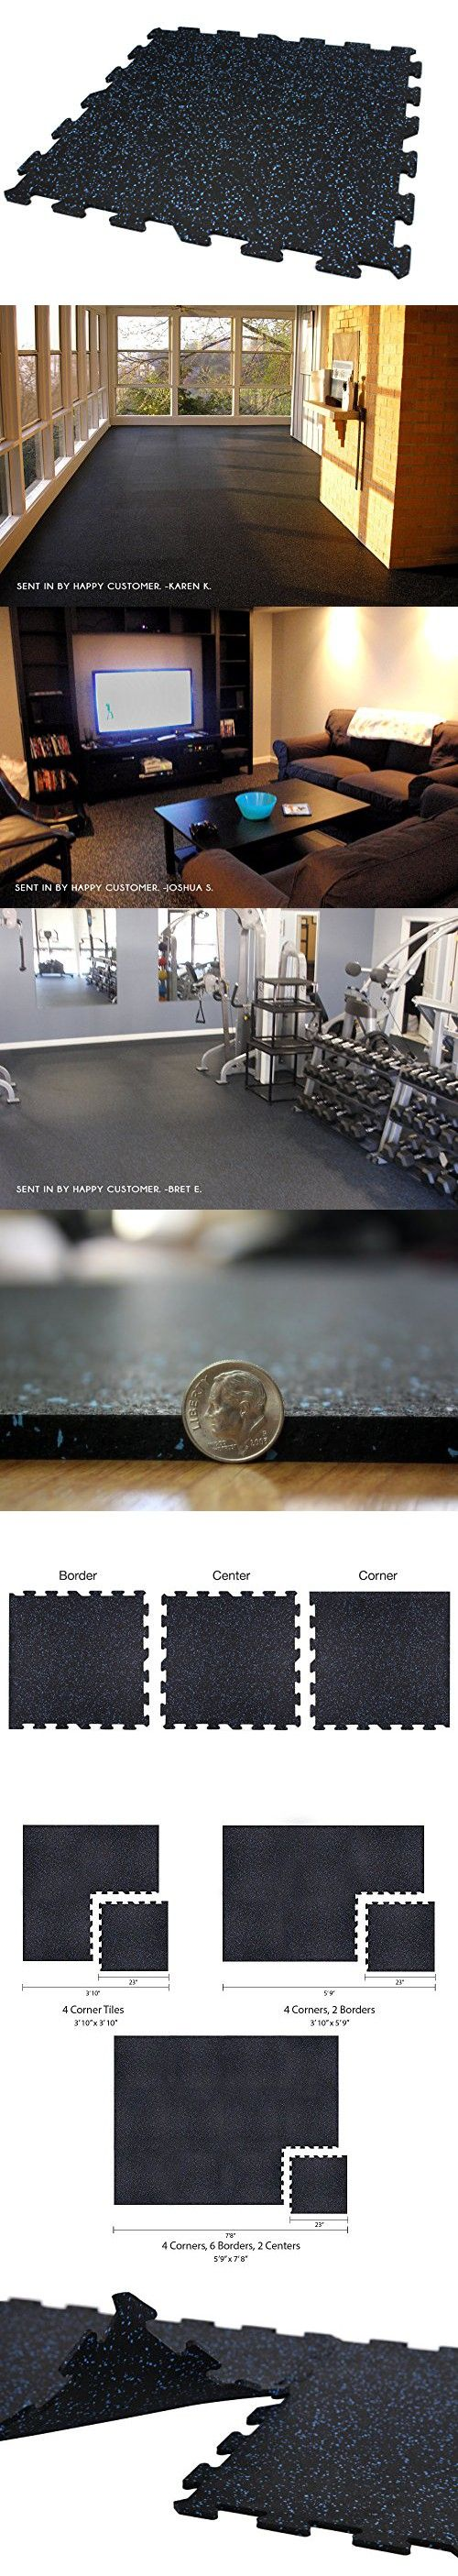 Best 25 gym flooring tiles ideas on pinterest home gym flooring incstores 8mm strong rubber tiles blue 3ft 10in x 5ft 9in interlocking rubber dailygadgetfo Choice Image